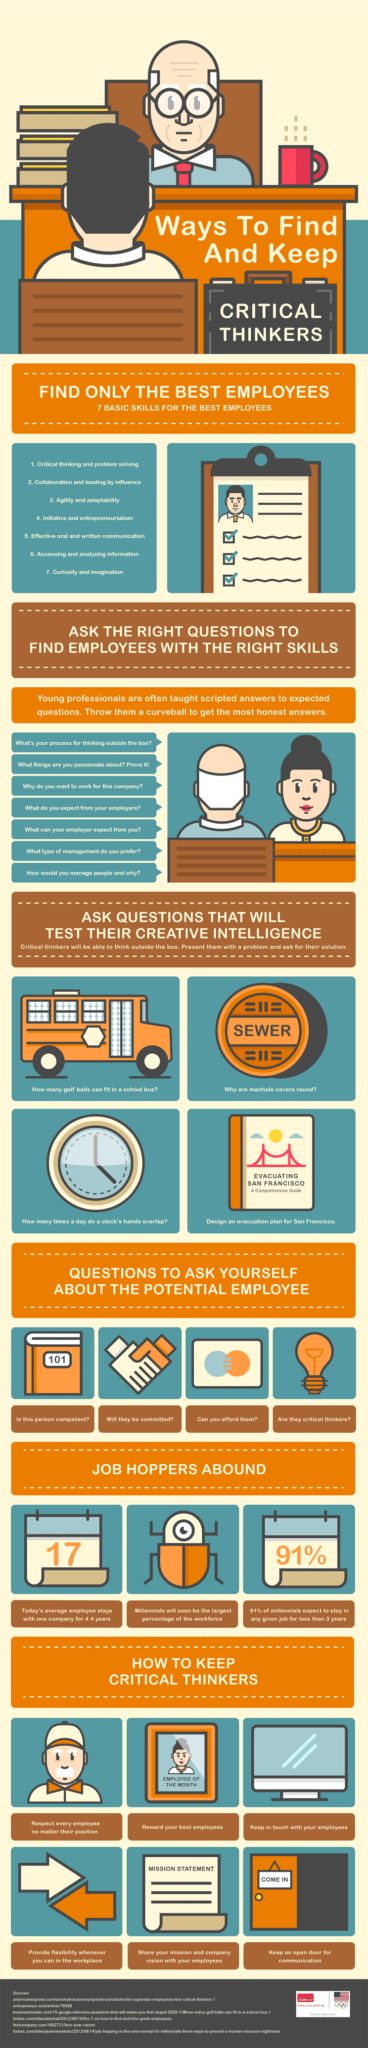 infographic-find-and-keep-critical-thinkers